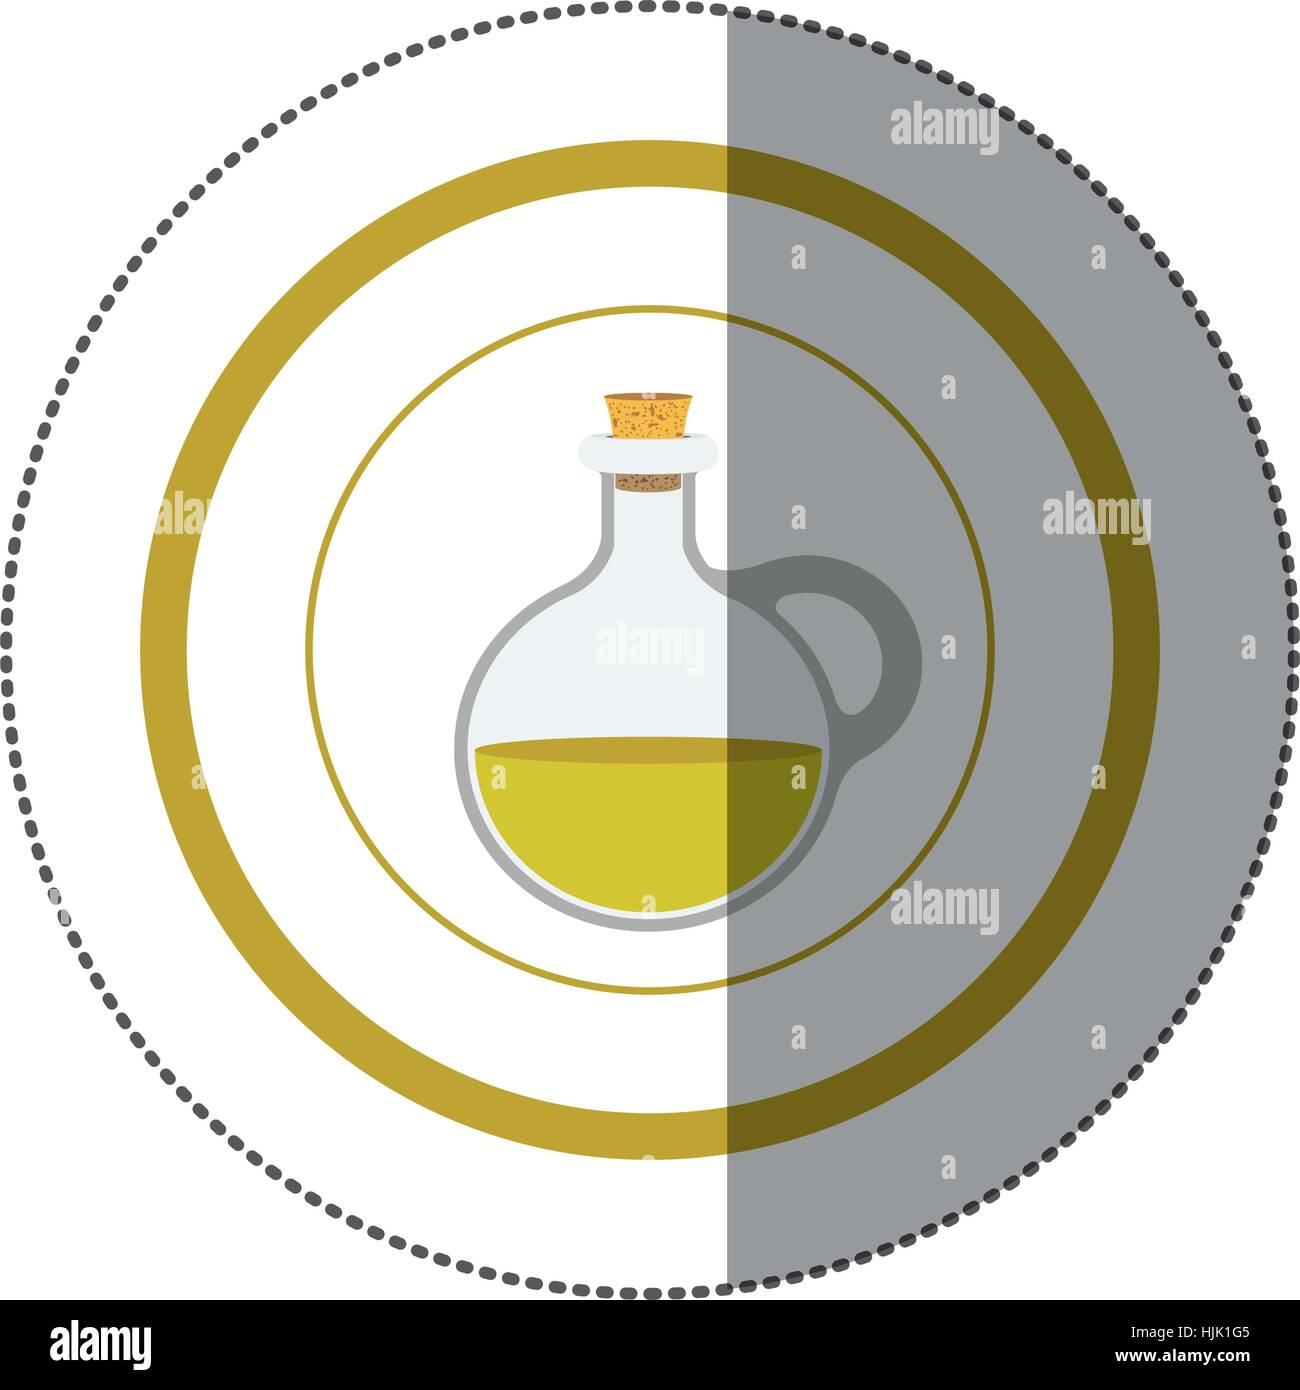 sticker circular shape with rounded glass jar with cork stoppers vector illustration - Stock Vector